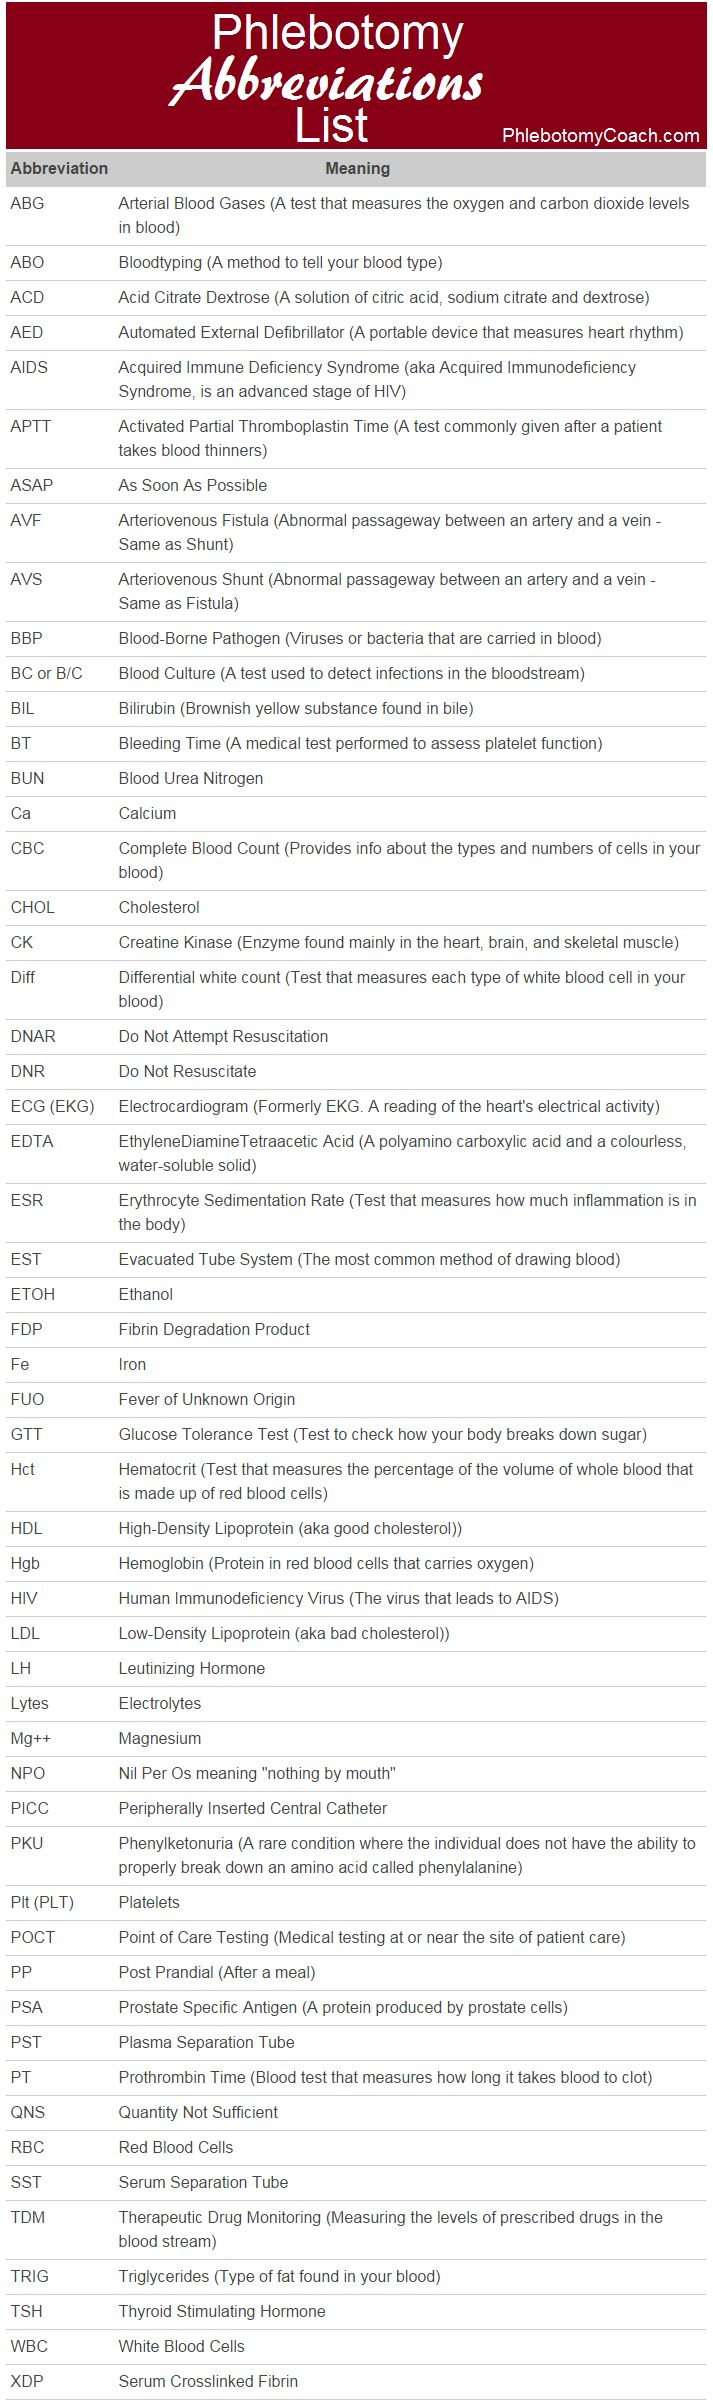 Phlebotomy Abbreviations List - Plus click through for their interactive study tool! #phlebotomy